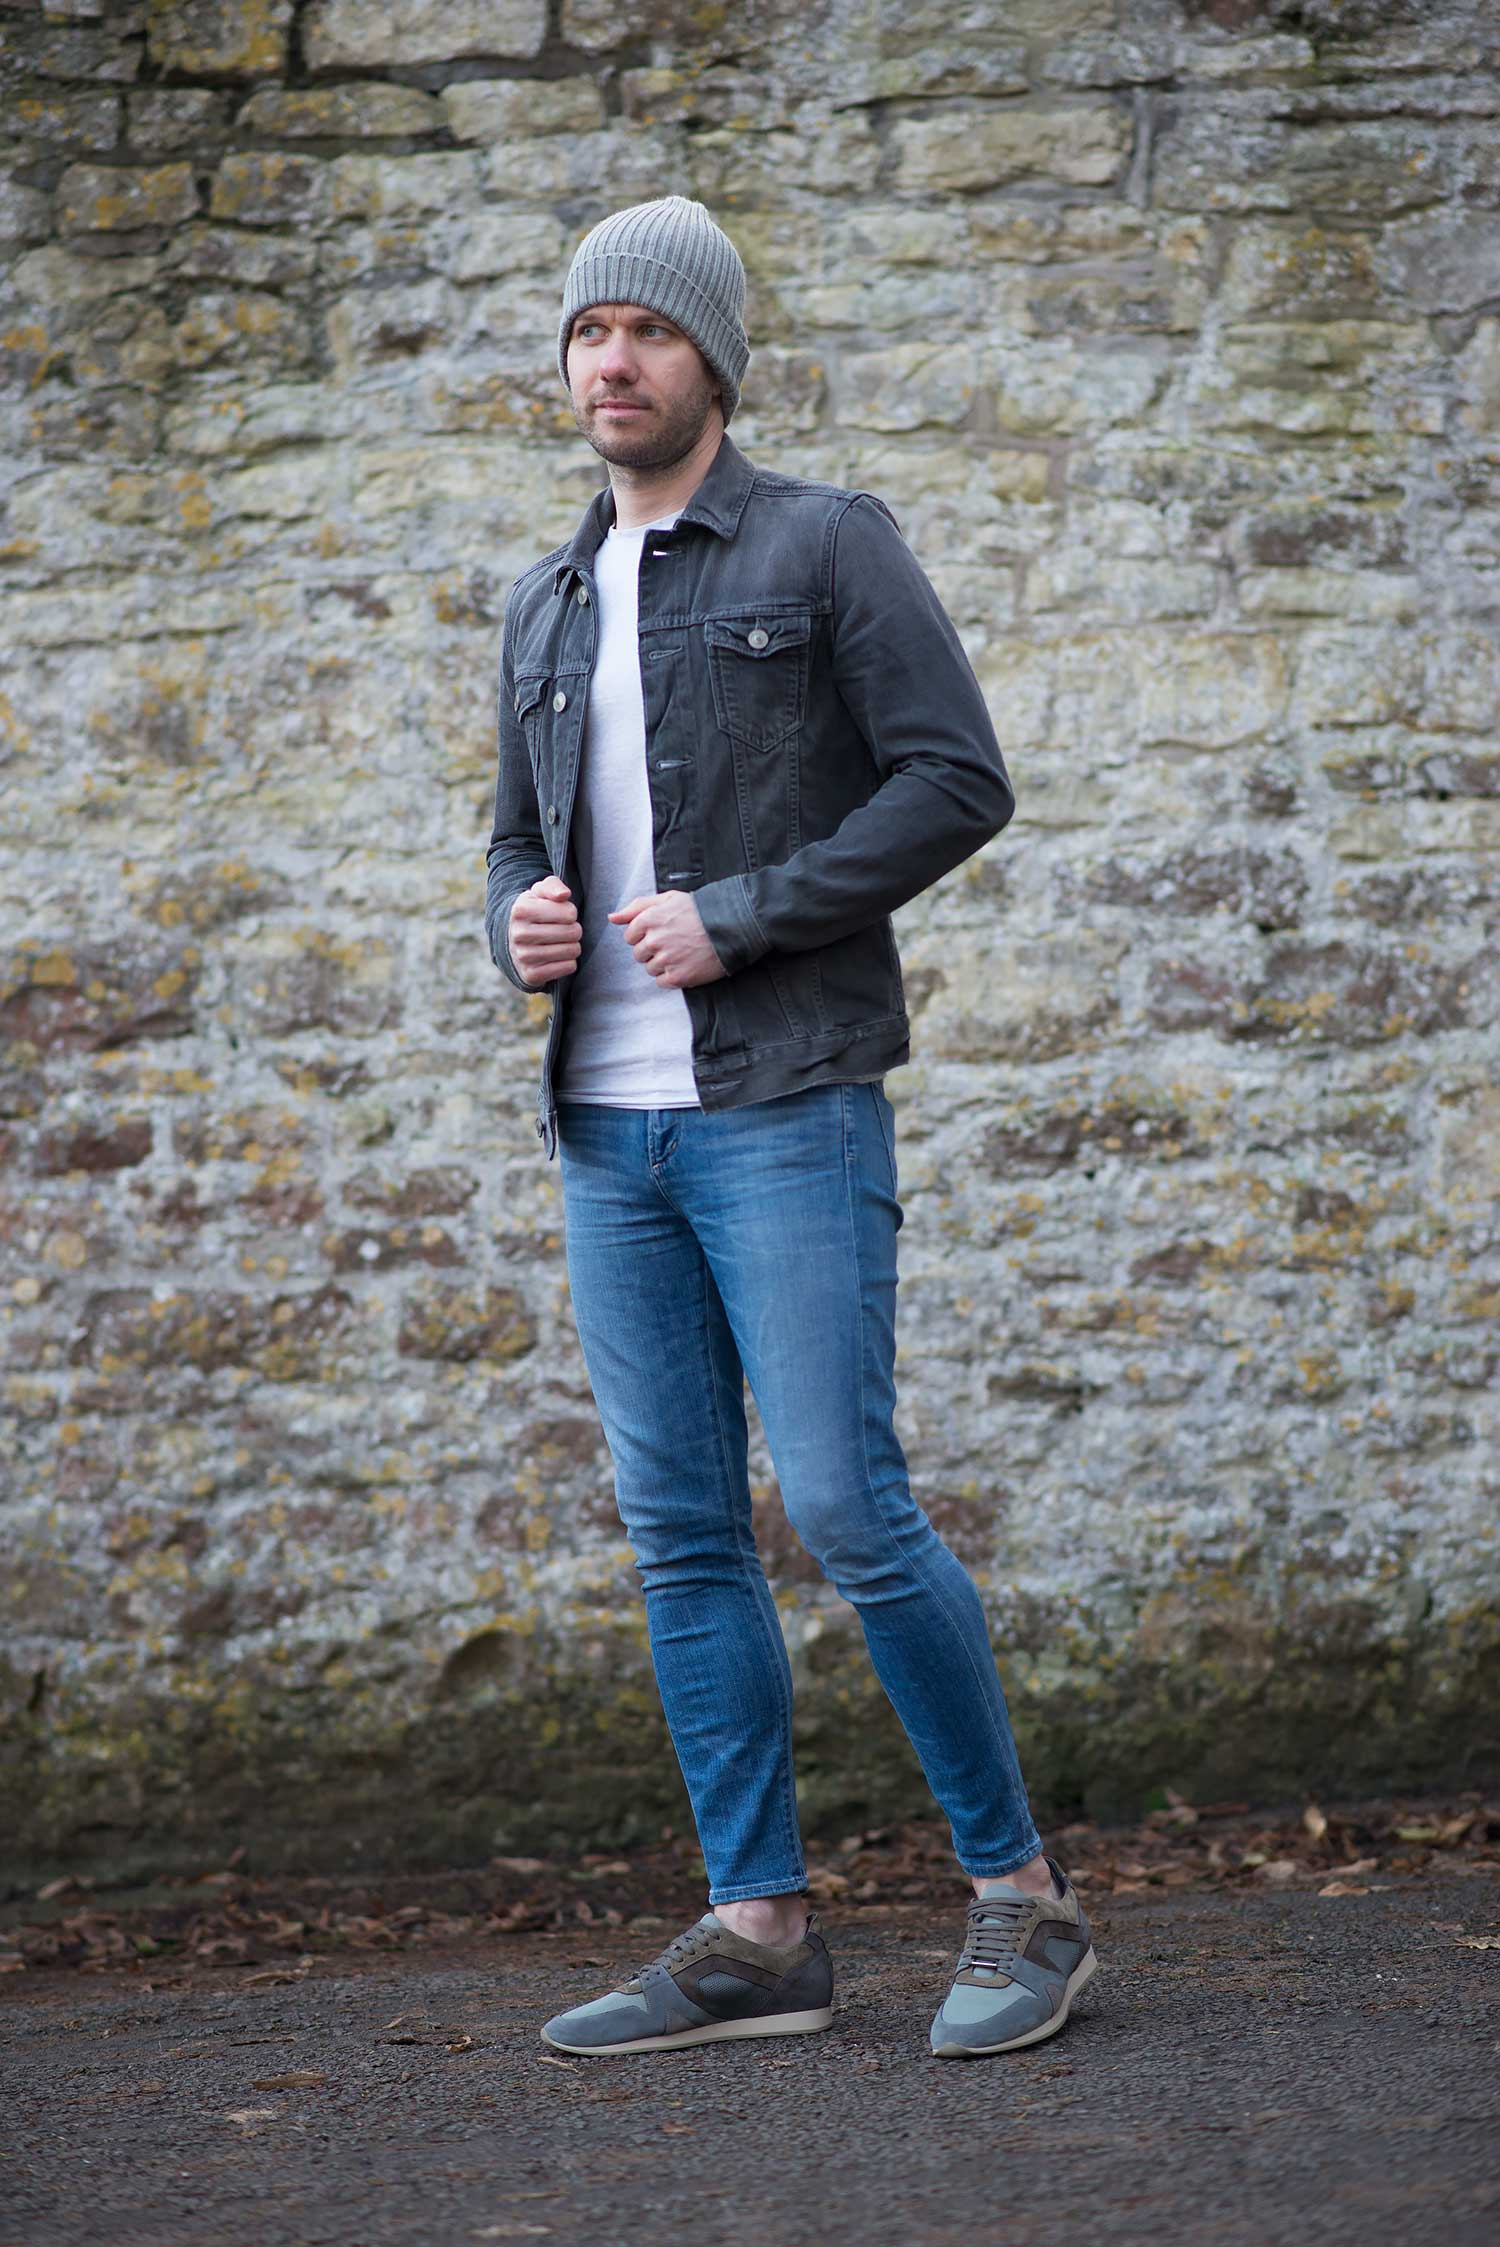 Allsaints Grey Denim Jacket And Womenu2019s Skinny Jeans Outfit   Your Average Guy